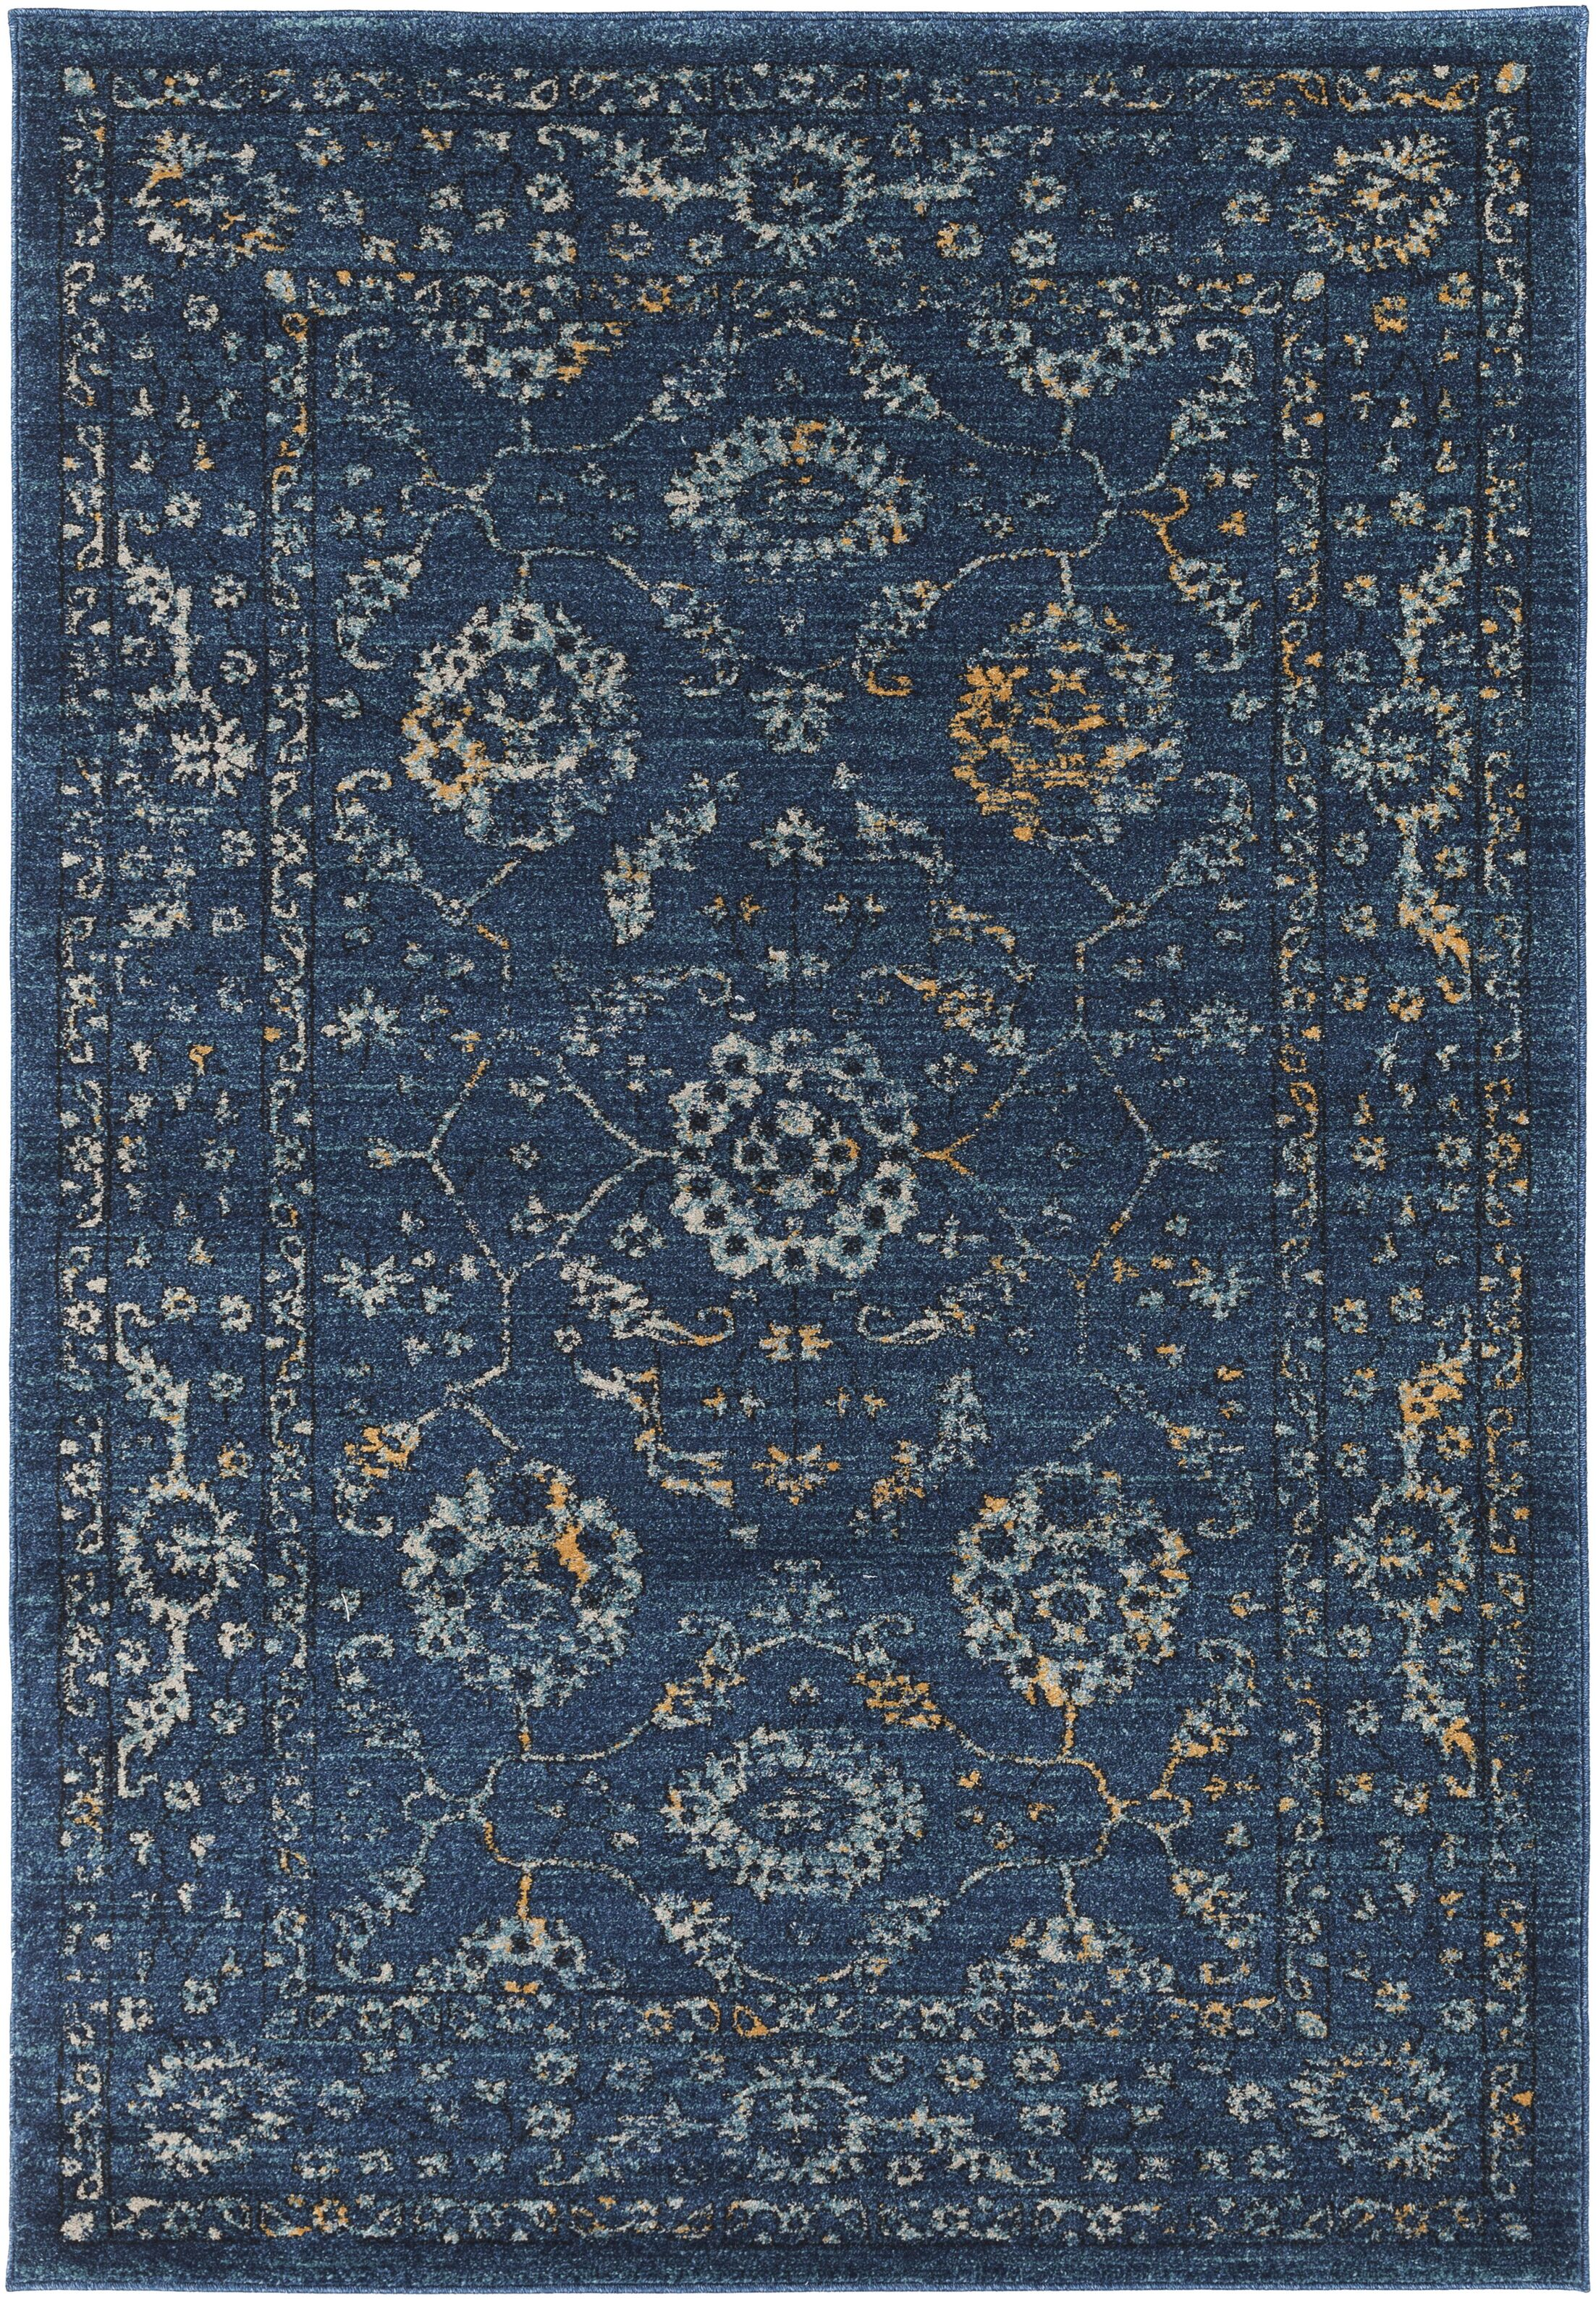 Cassian Navy/Teal Area Rug Rug Size: Rectangle 5'3